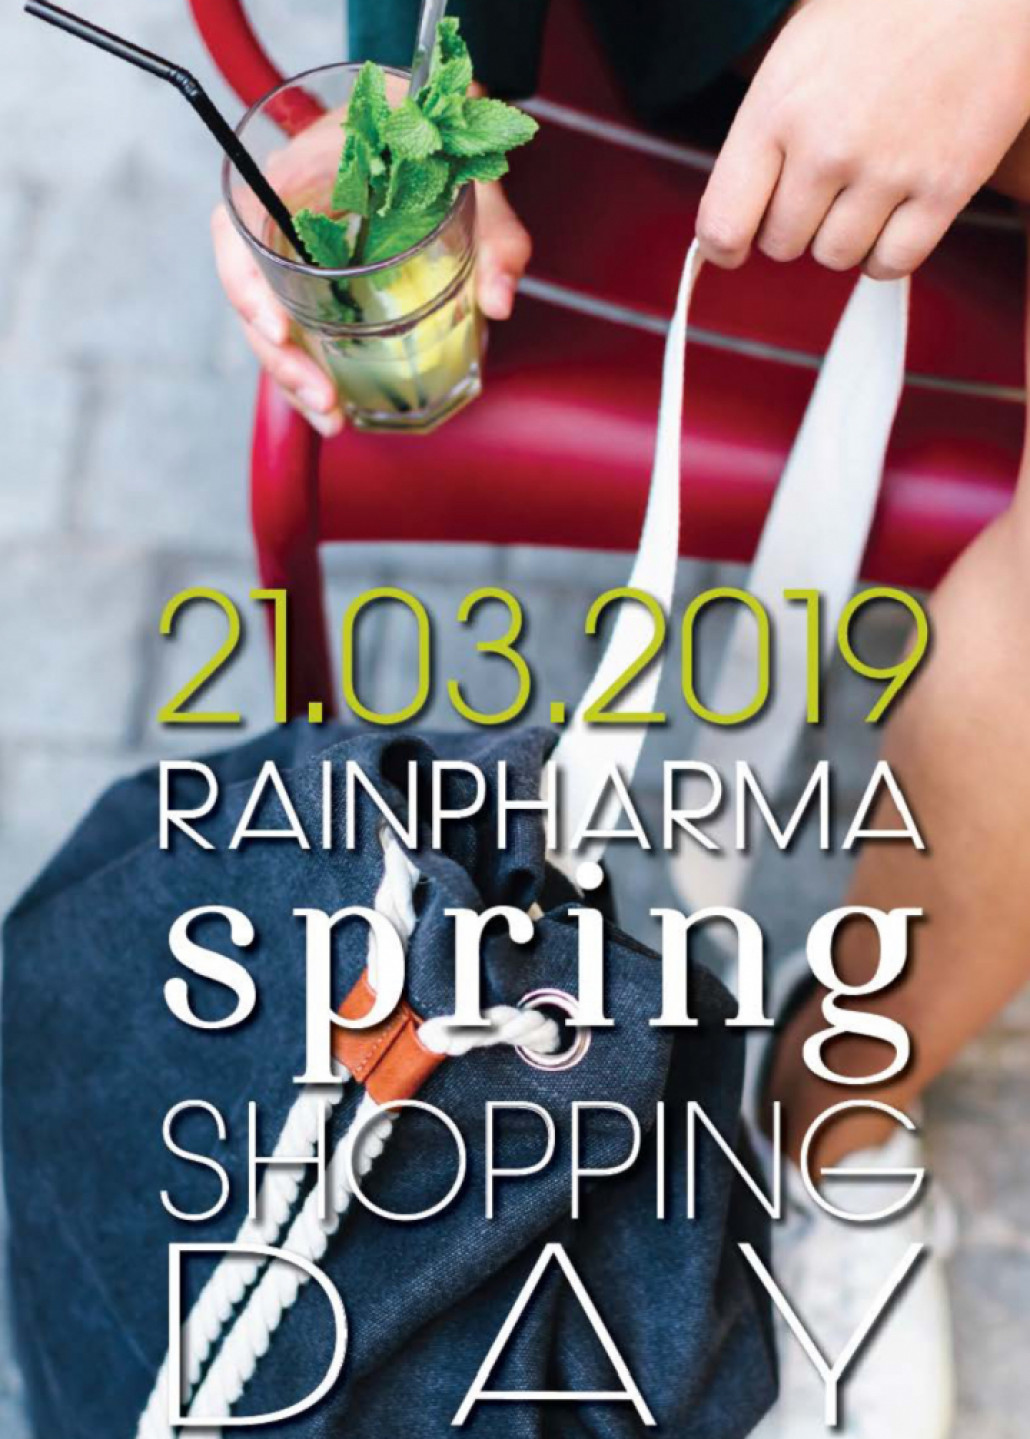 RainPharma Lente Shopping Event